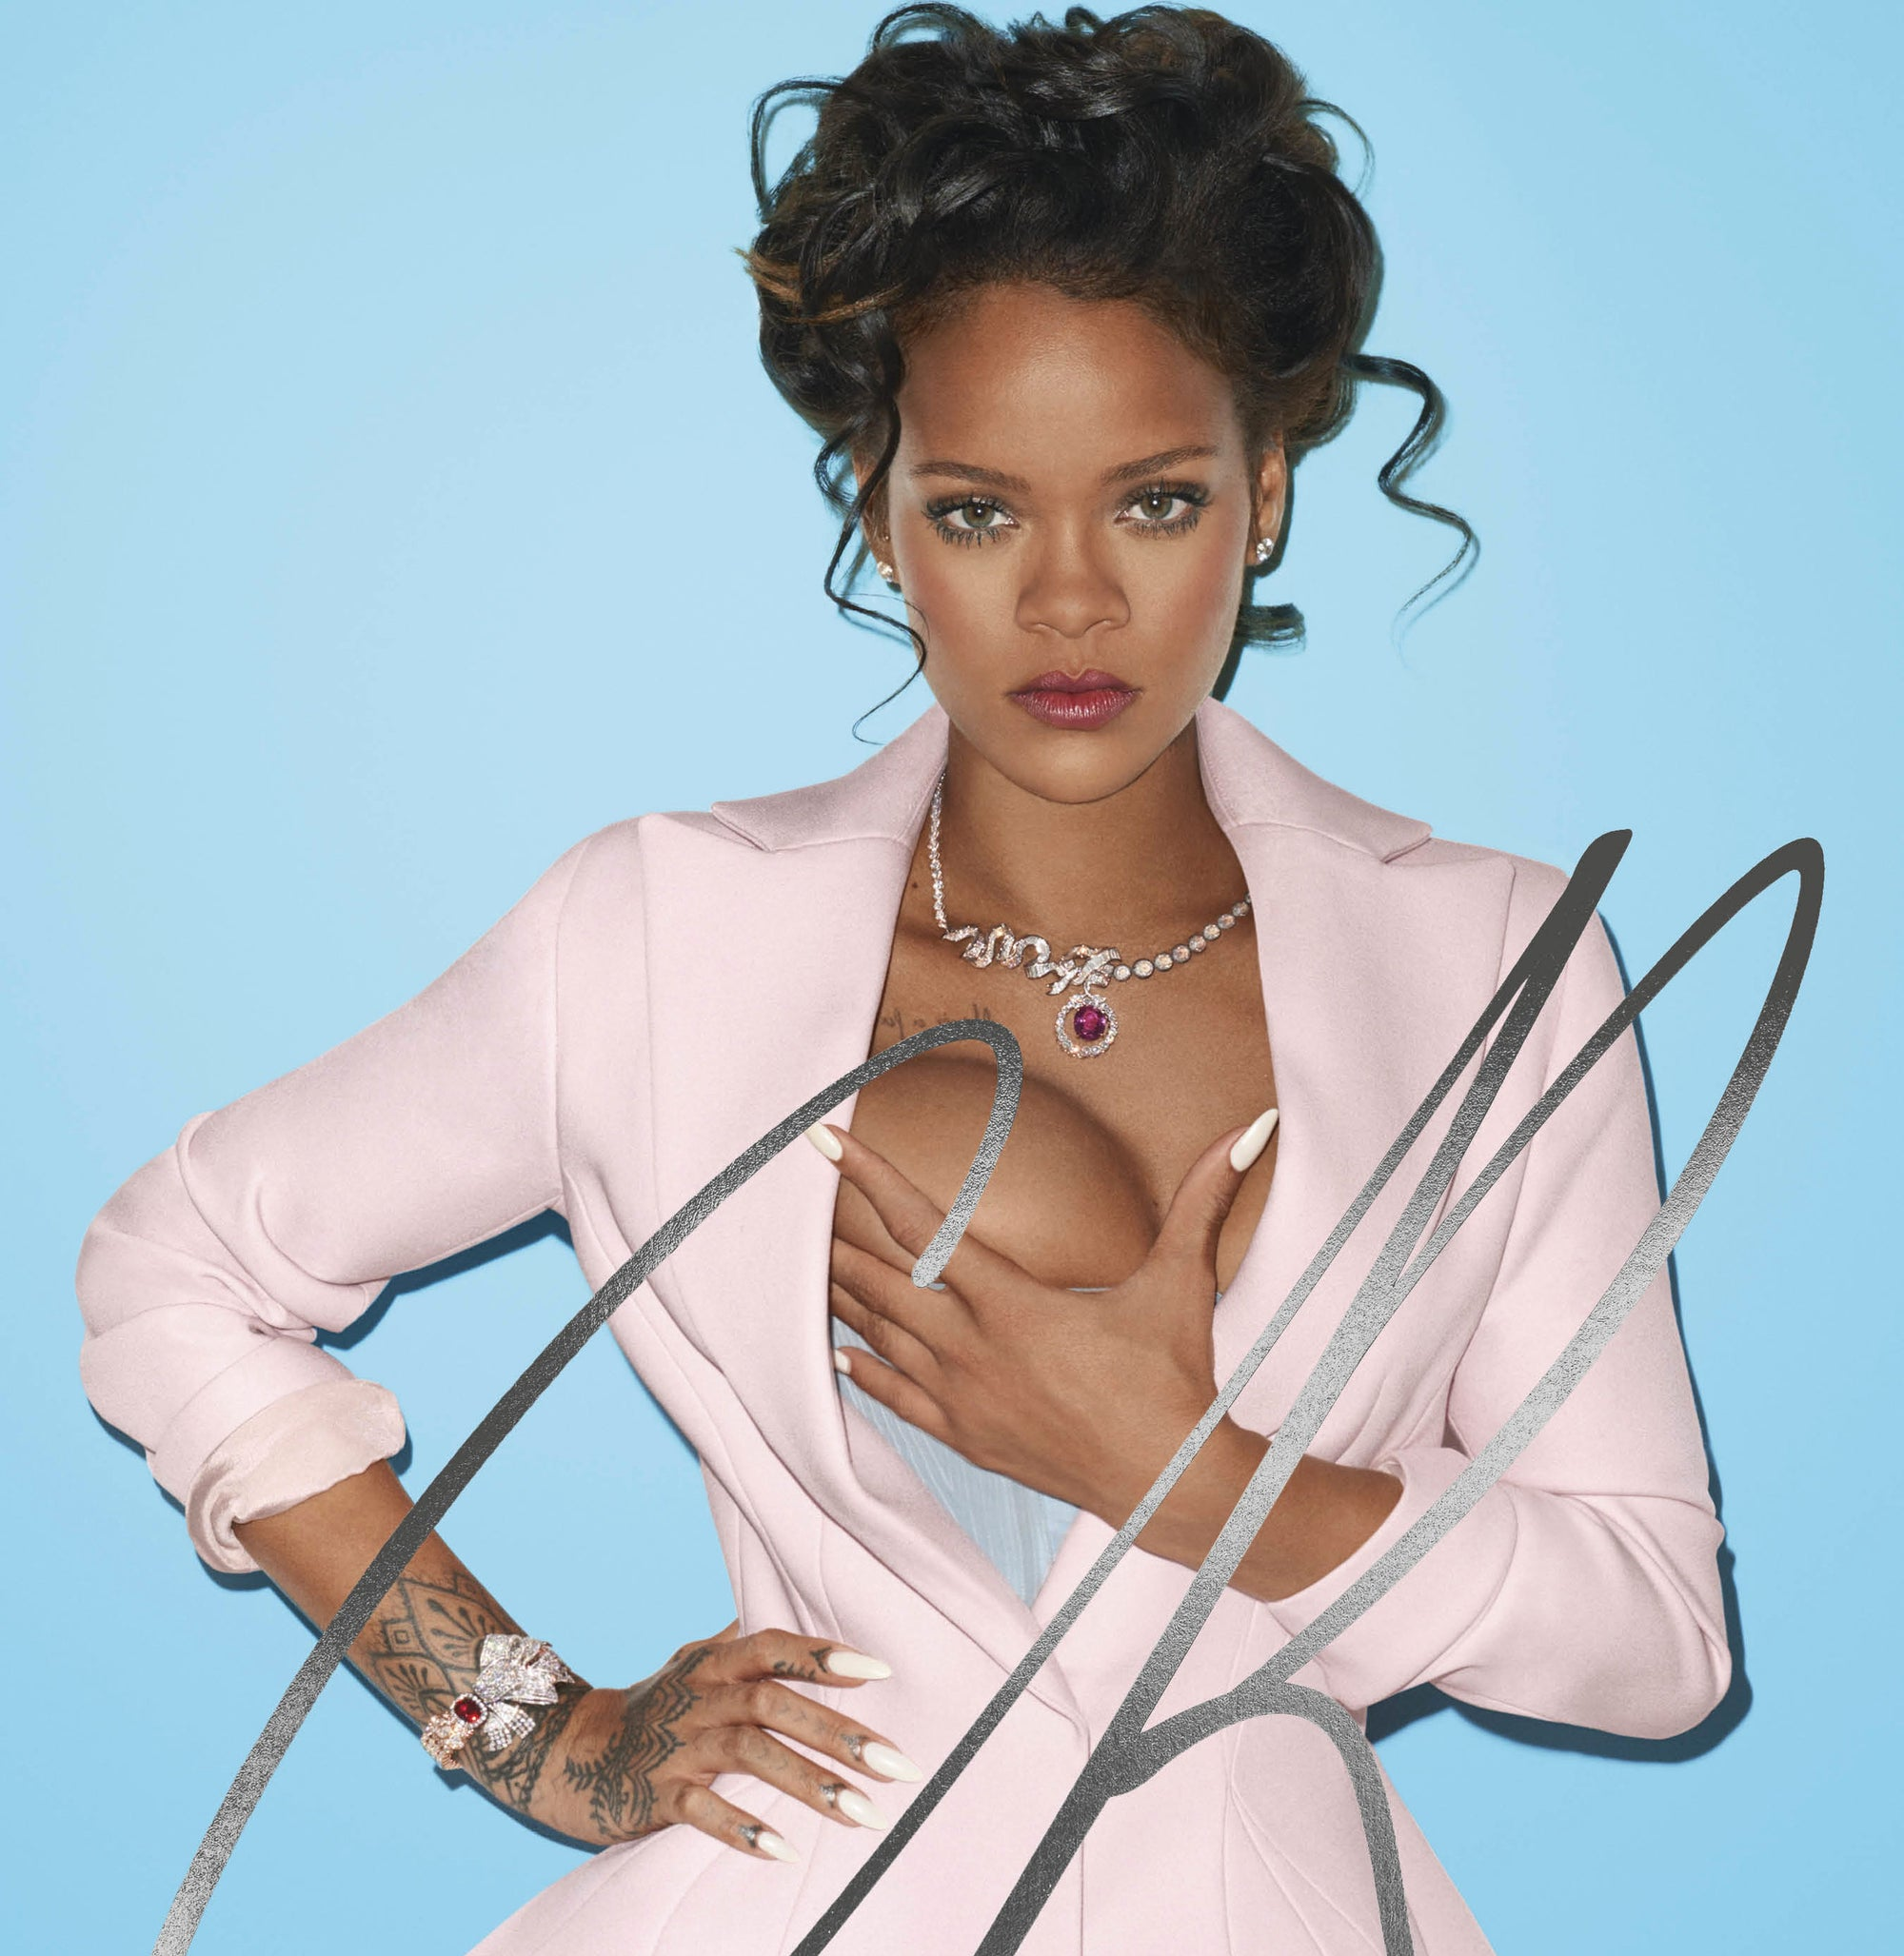 The Rihanna Book — A Photographic Masterpiece